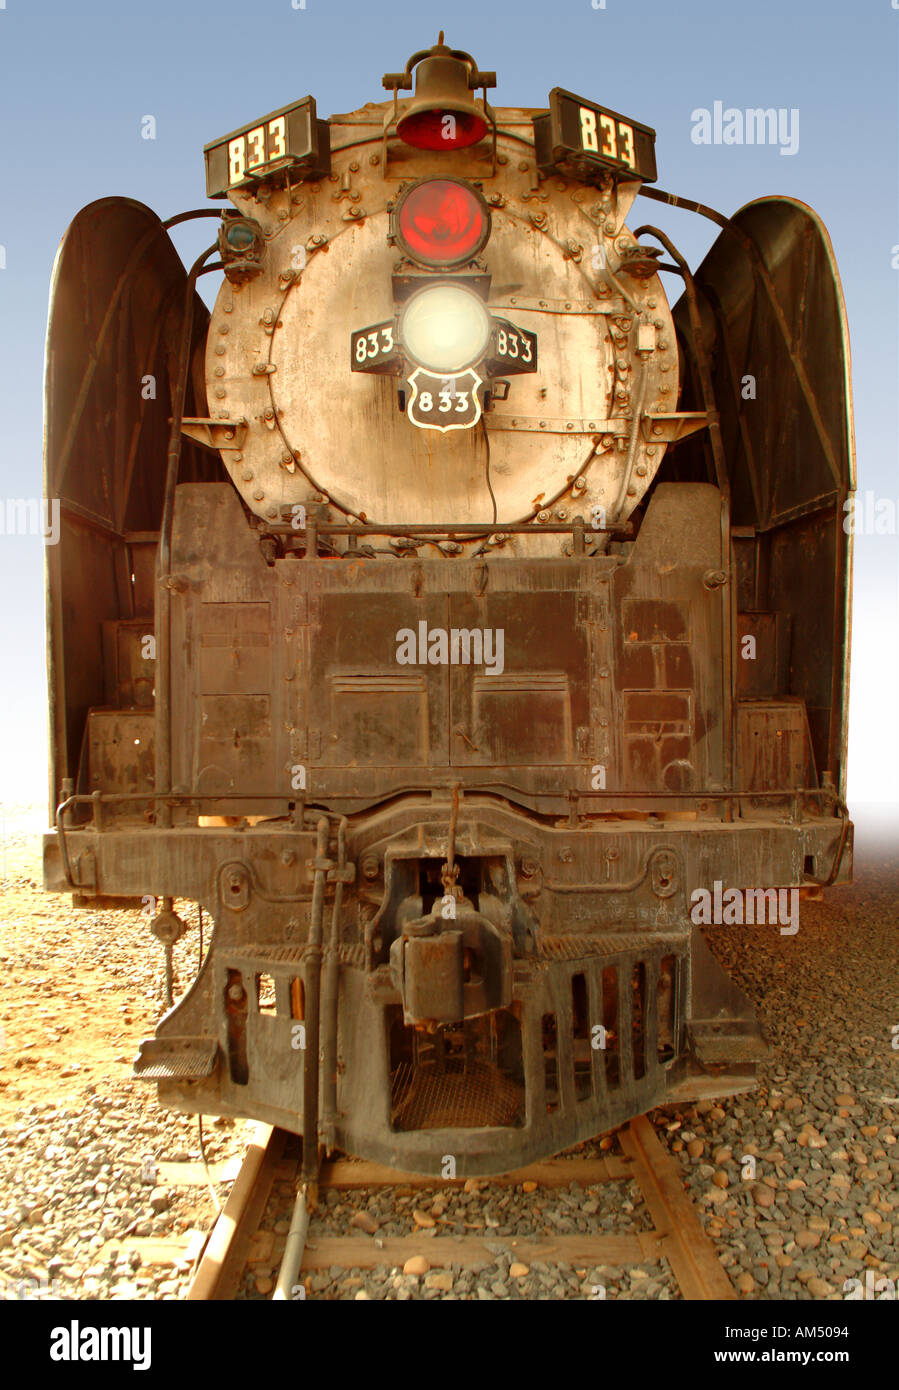 old antique steam train engine - Stock Image